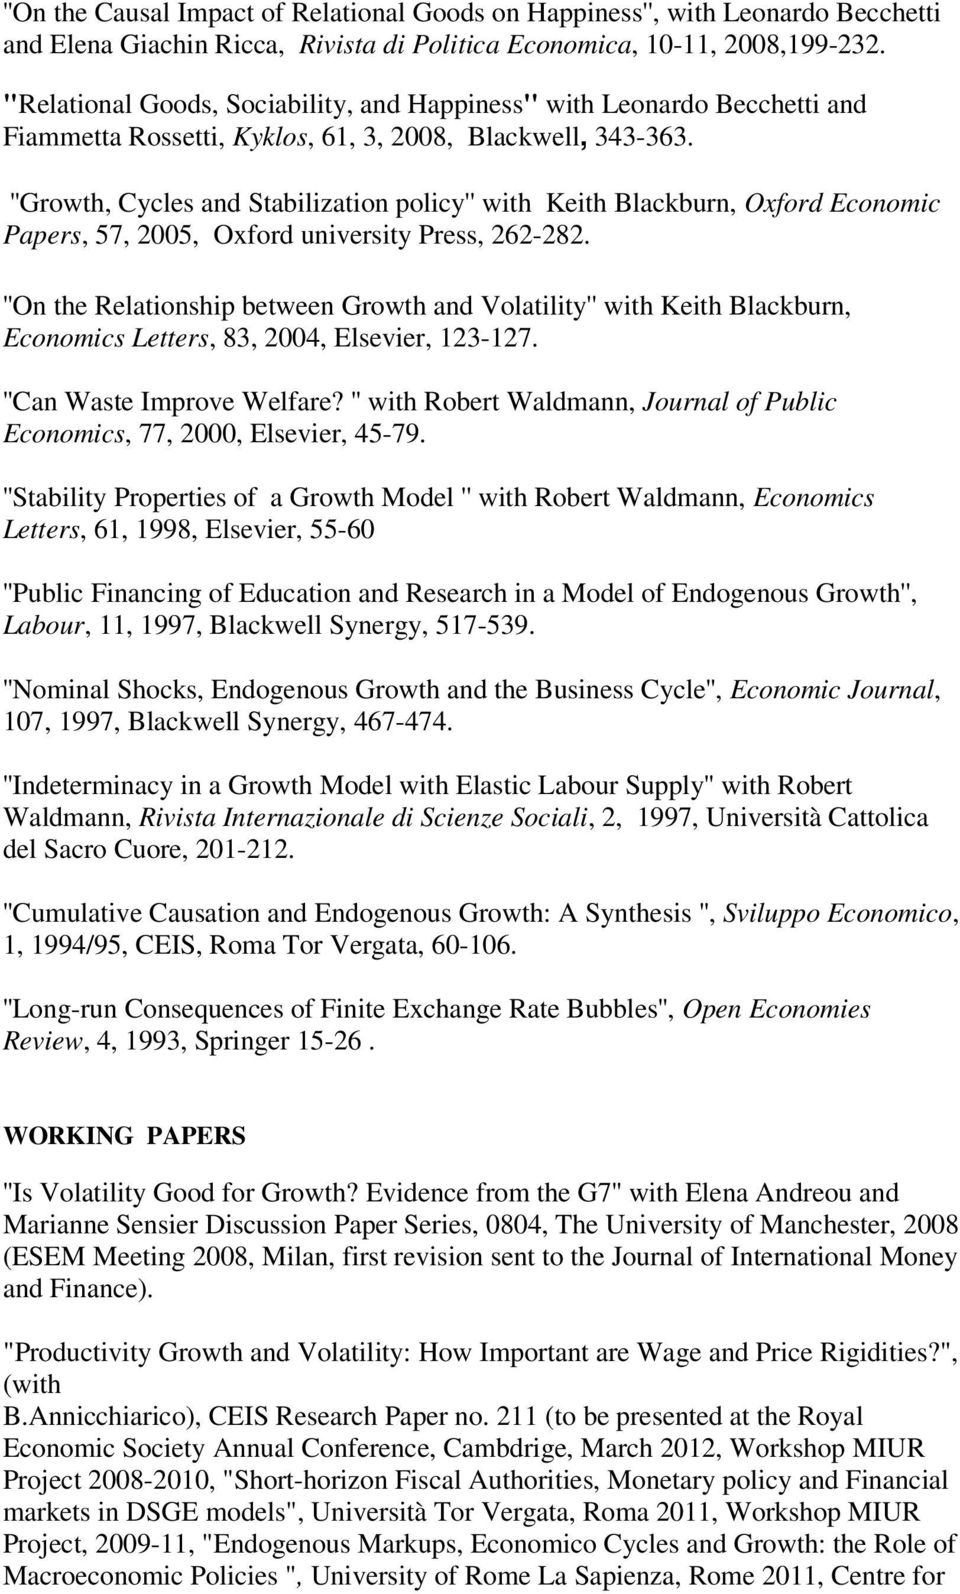 ''Growth, Cycles and Stabilization policy'' with Keith Blackburn, Oxford Economic Papers, 57, 2005, Oxford university Press, 262-282.